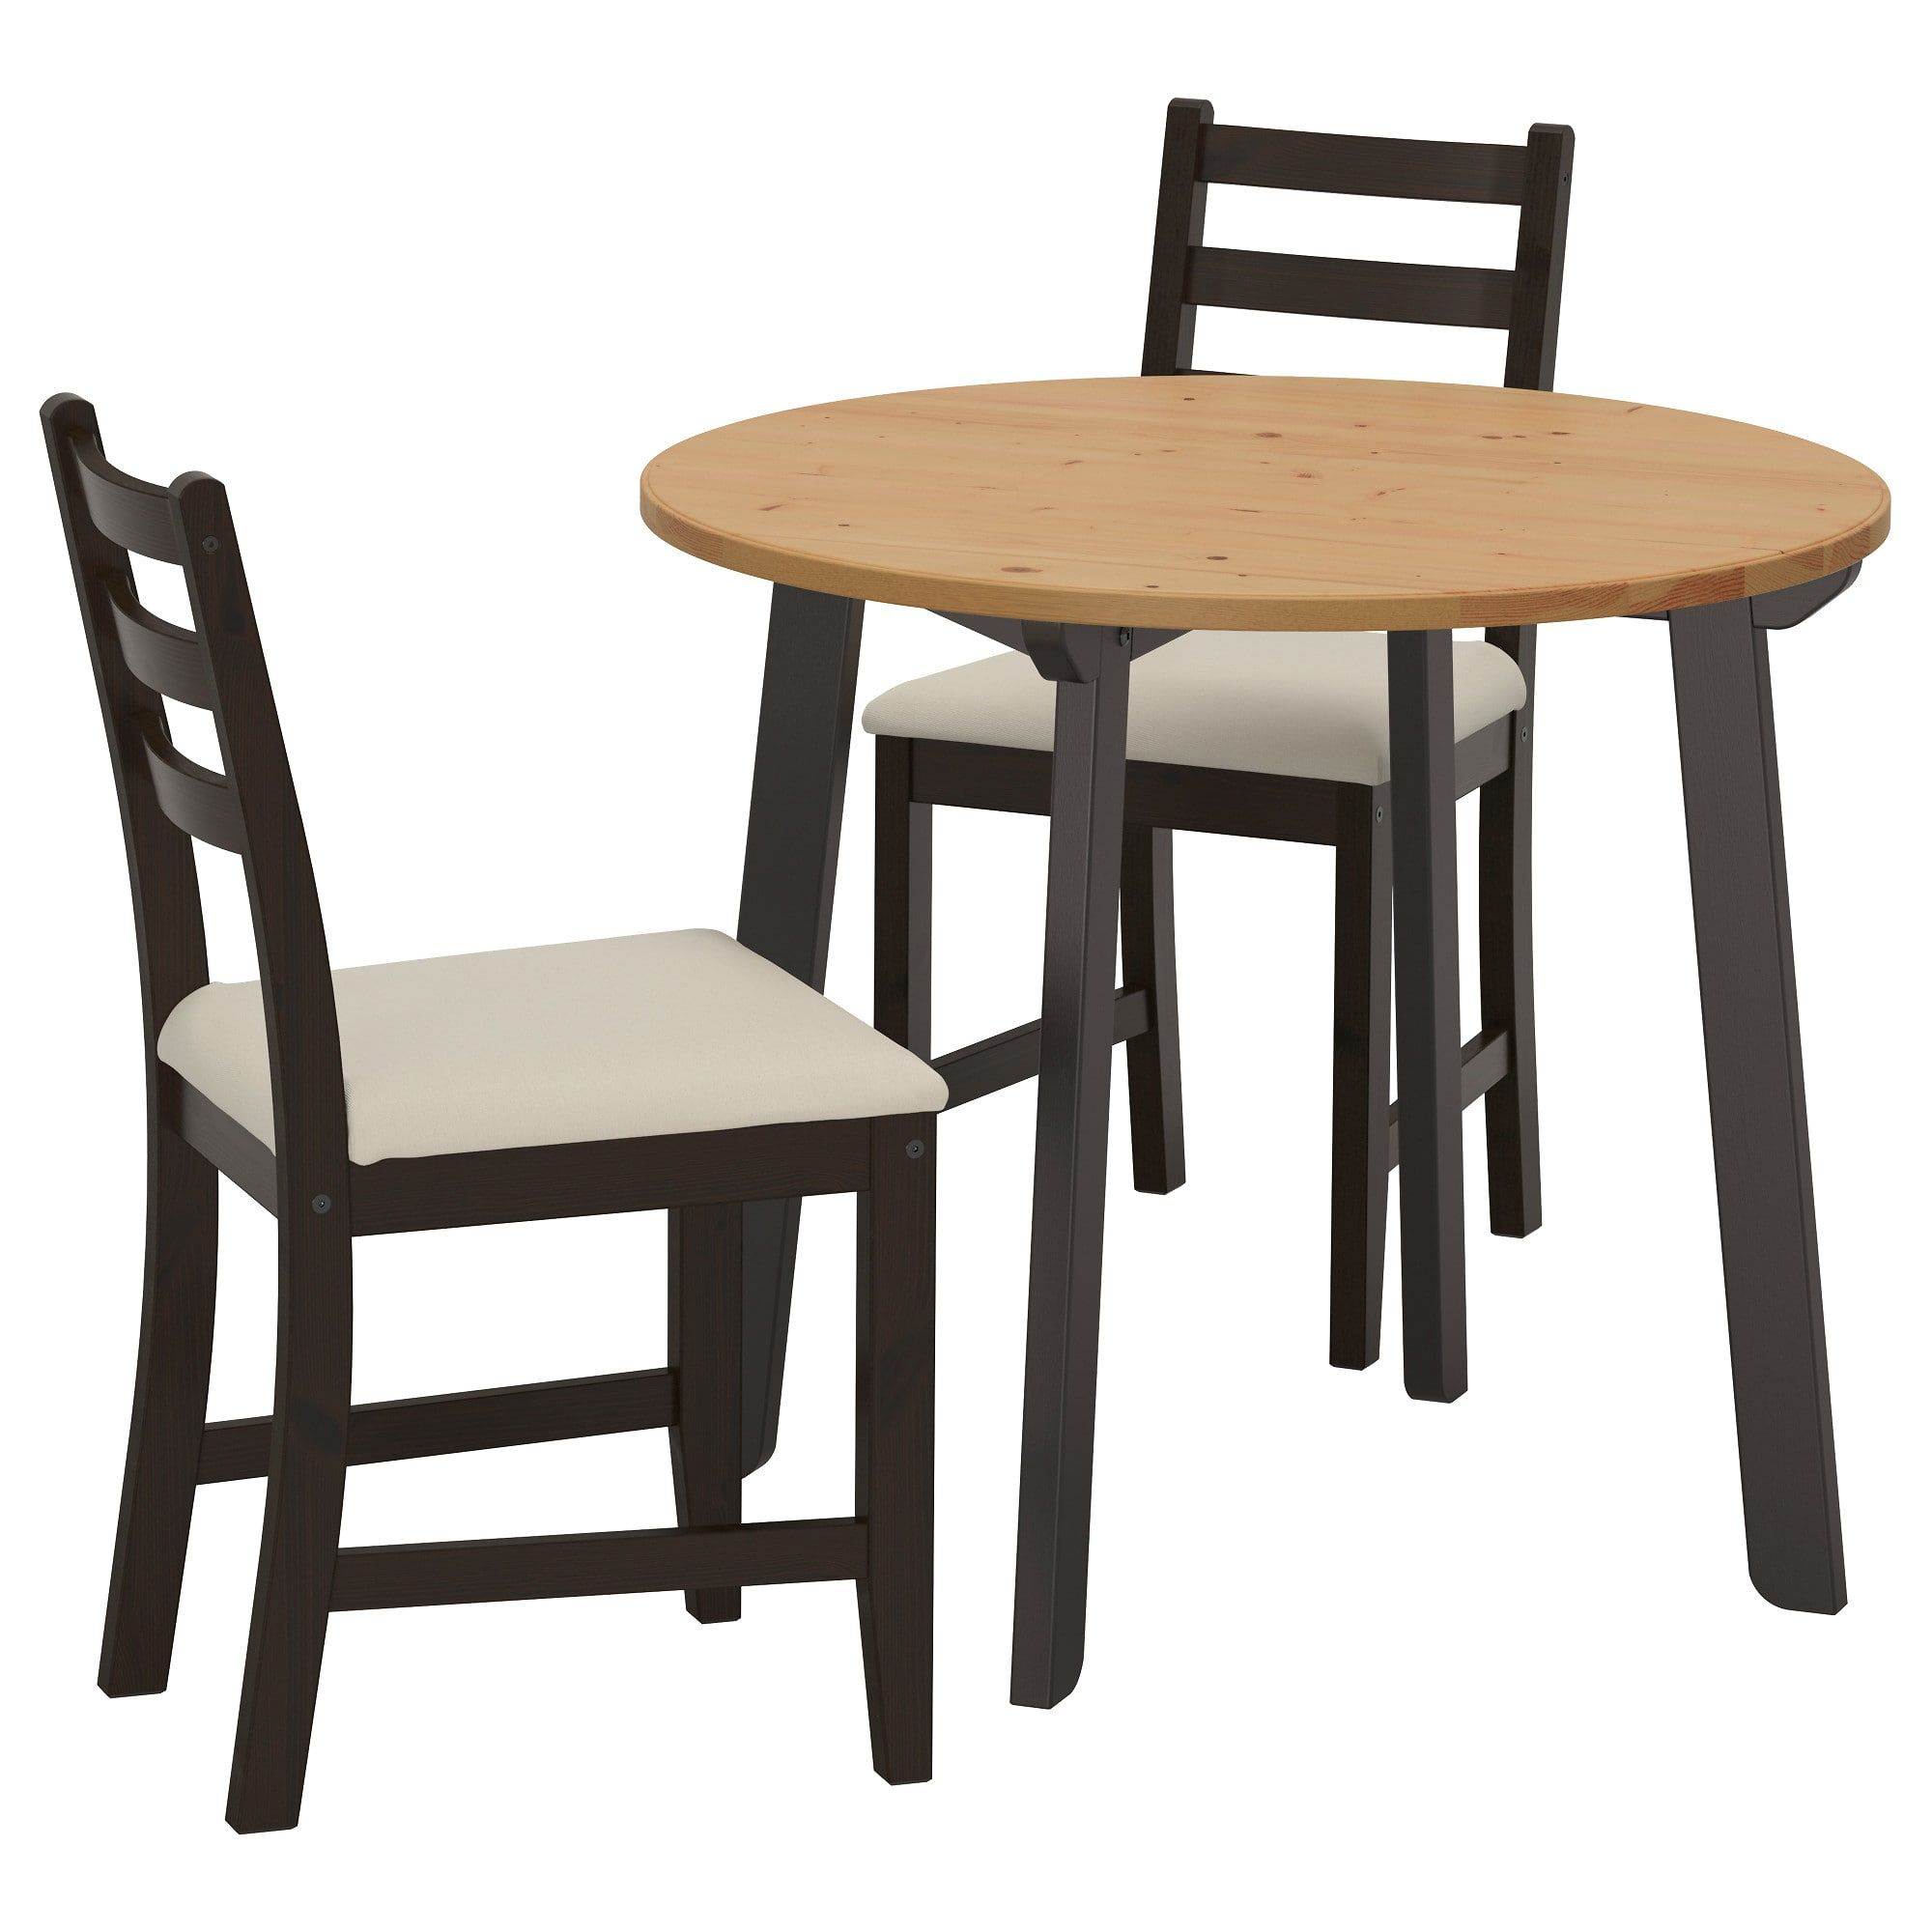 IKEA US Furniture and Home Furnishings | Ikea dining sets